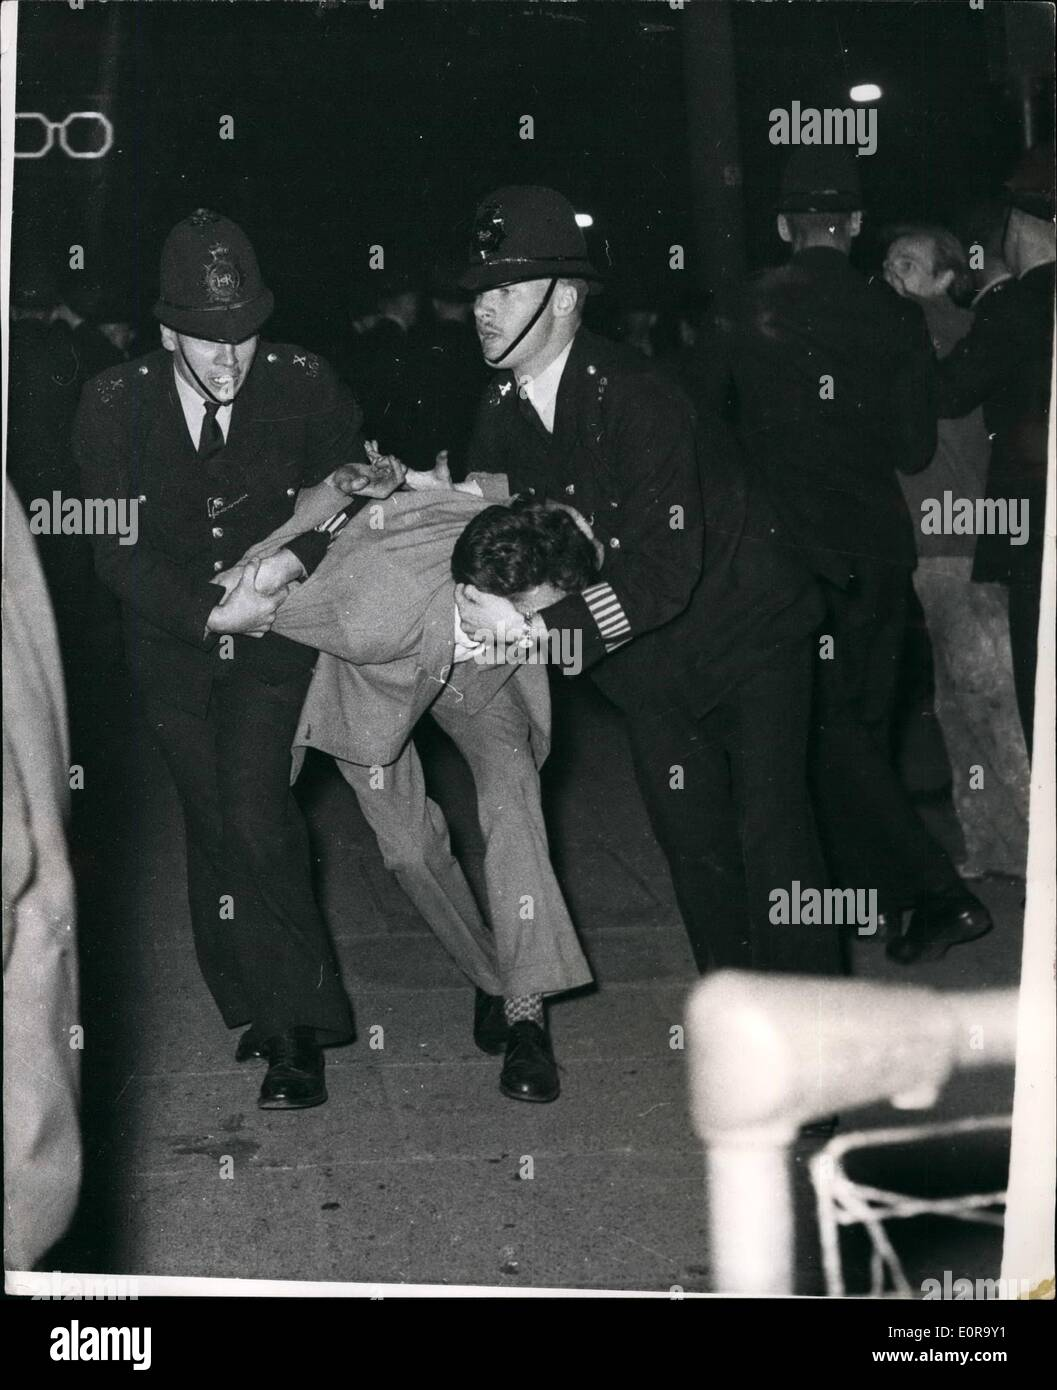 Sep. 09, 1958 - Black-White Racial Riots Once Again In Notting Hill Gate.. Police Struggle With A Demonstrator. Many arrests were made in the Black - White racial riots which broke out again for the fourth night in succession at the Notting Hill Gate area of London. Keystone Photo Shows:- Policeman struggle with rioter - in Blenheim Crescent... Many arrests were made. - Stock Image